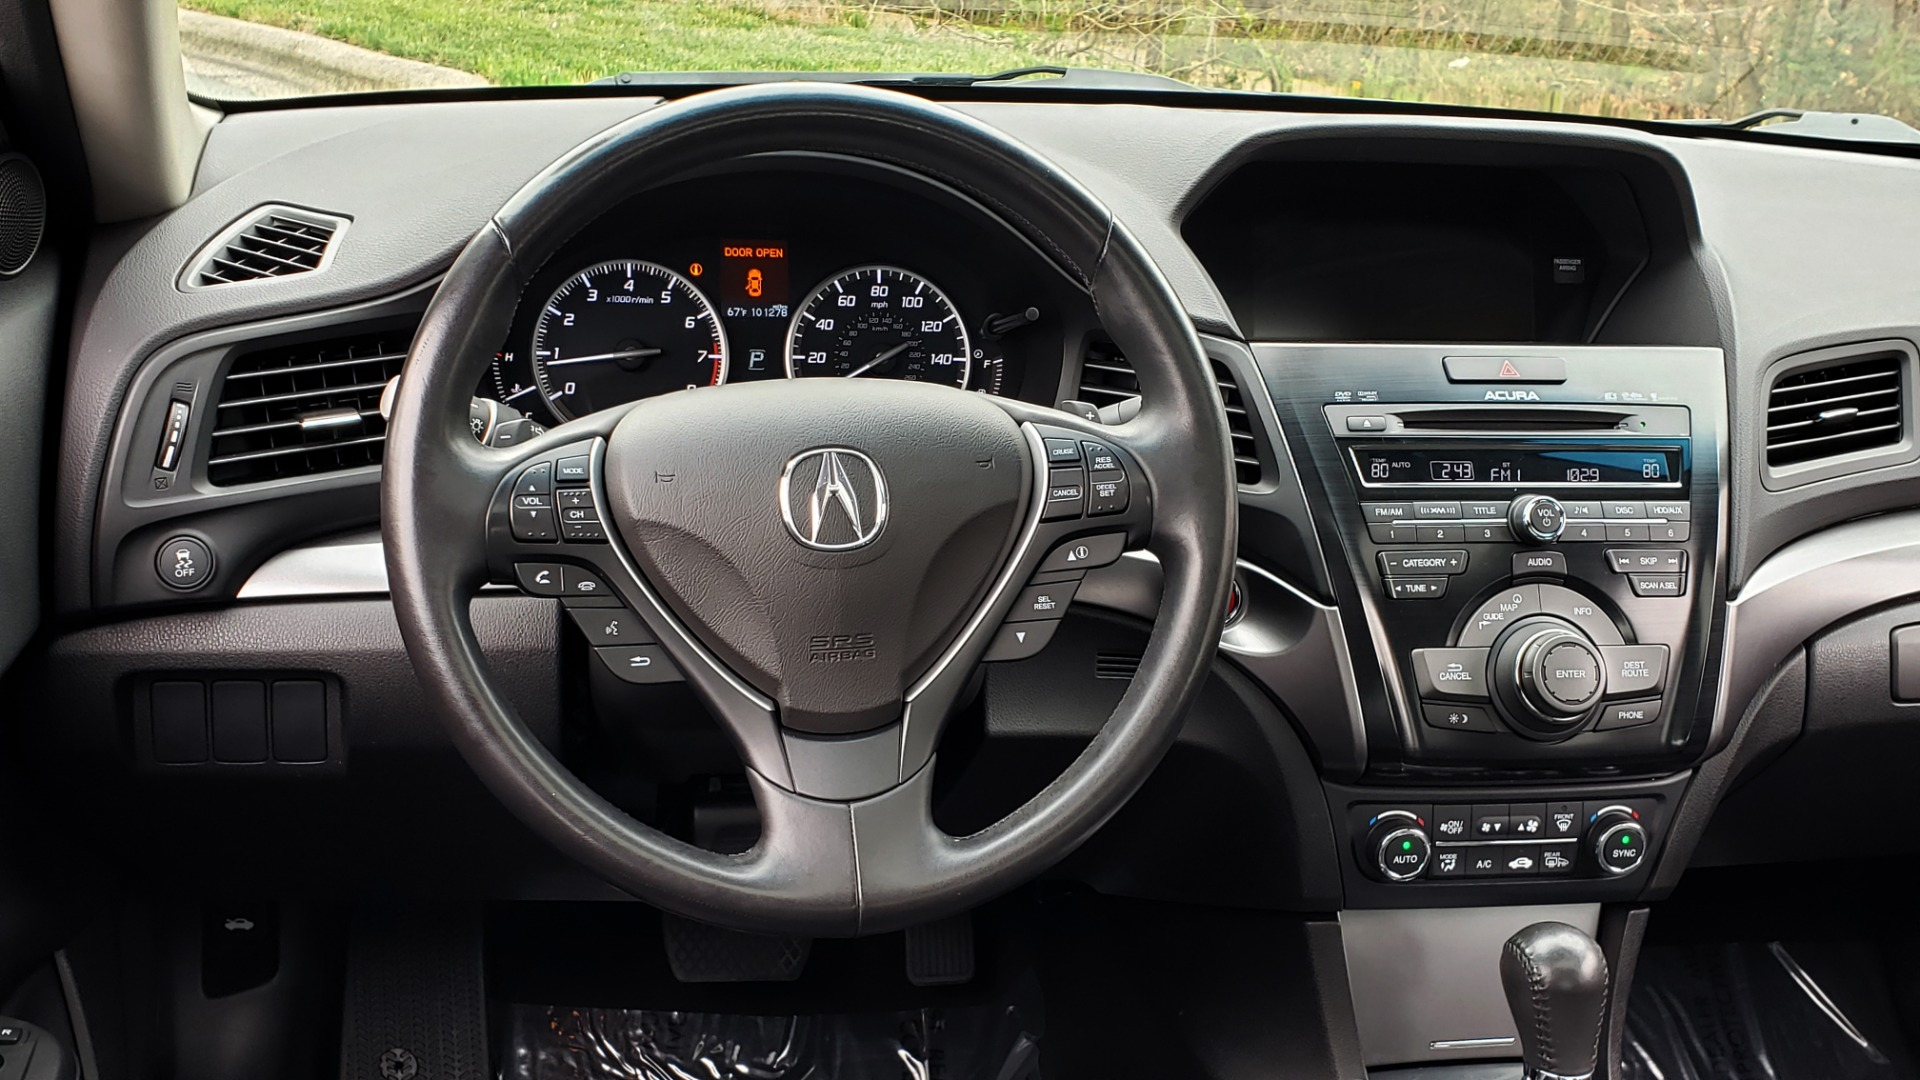 Used 2013 Acura ILX TECH PKG / SUNROOF / NAV / DUAL-ZONE A/C / REARVIEW for sale Sold at Formula Imports in Charlotte NC 28227 37